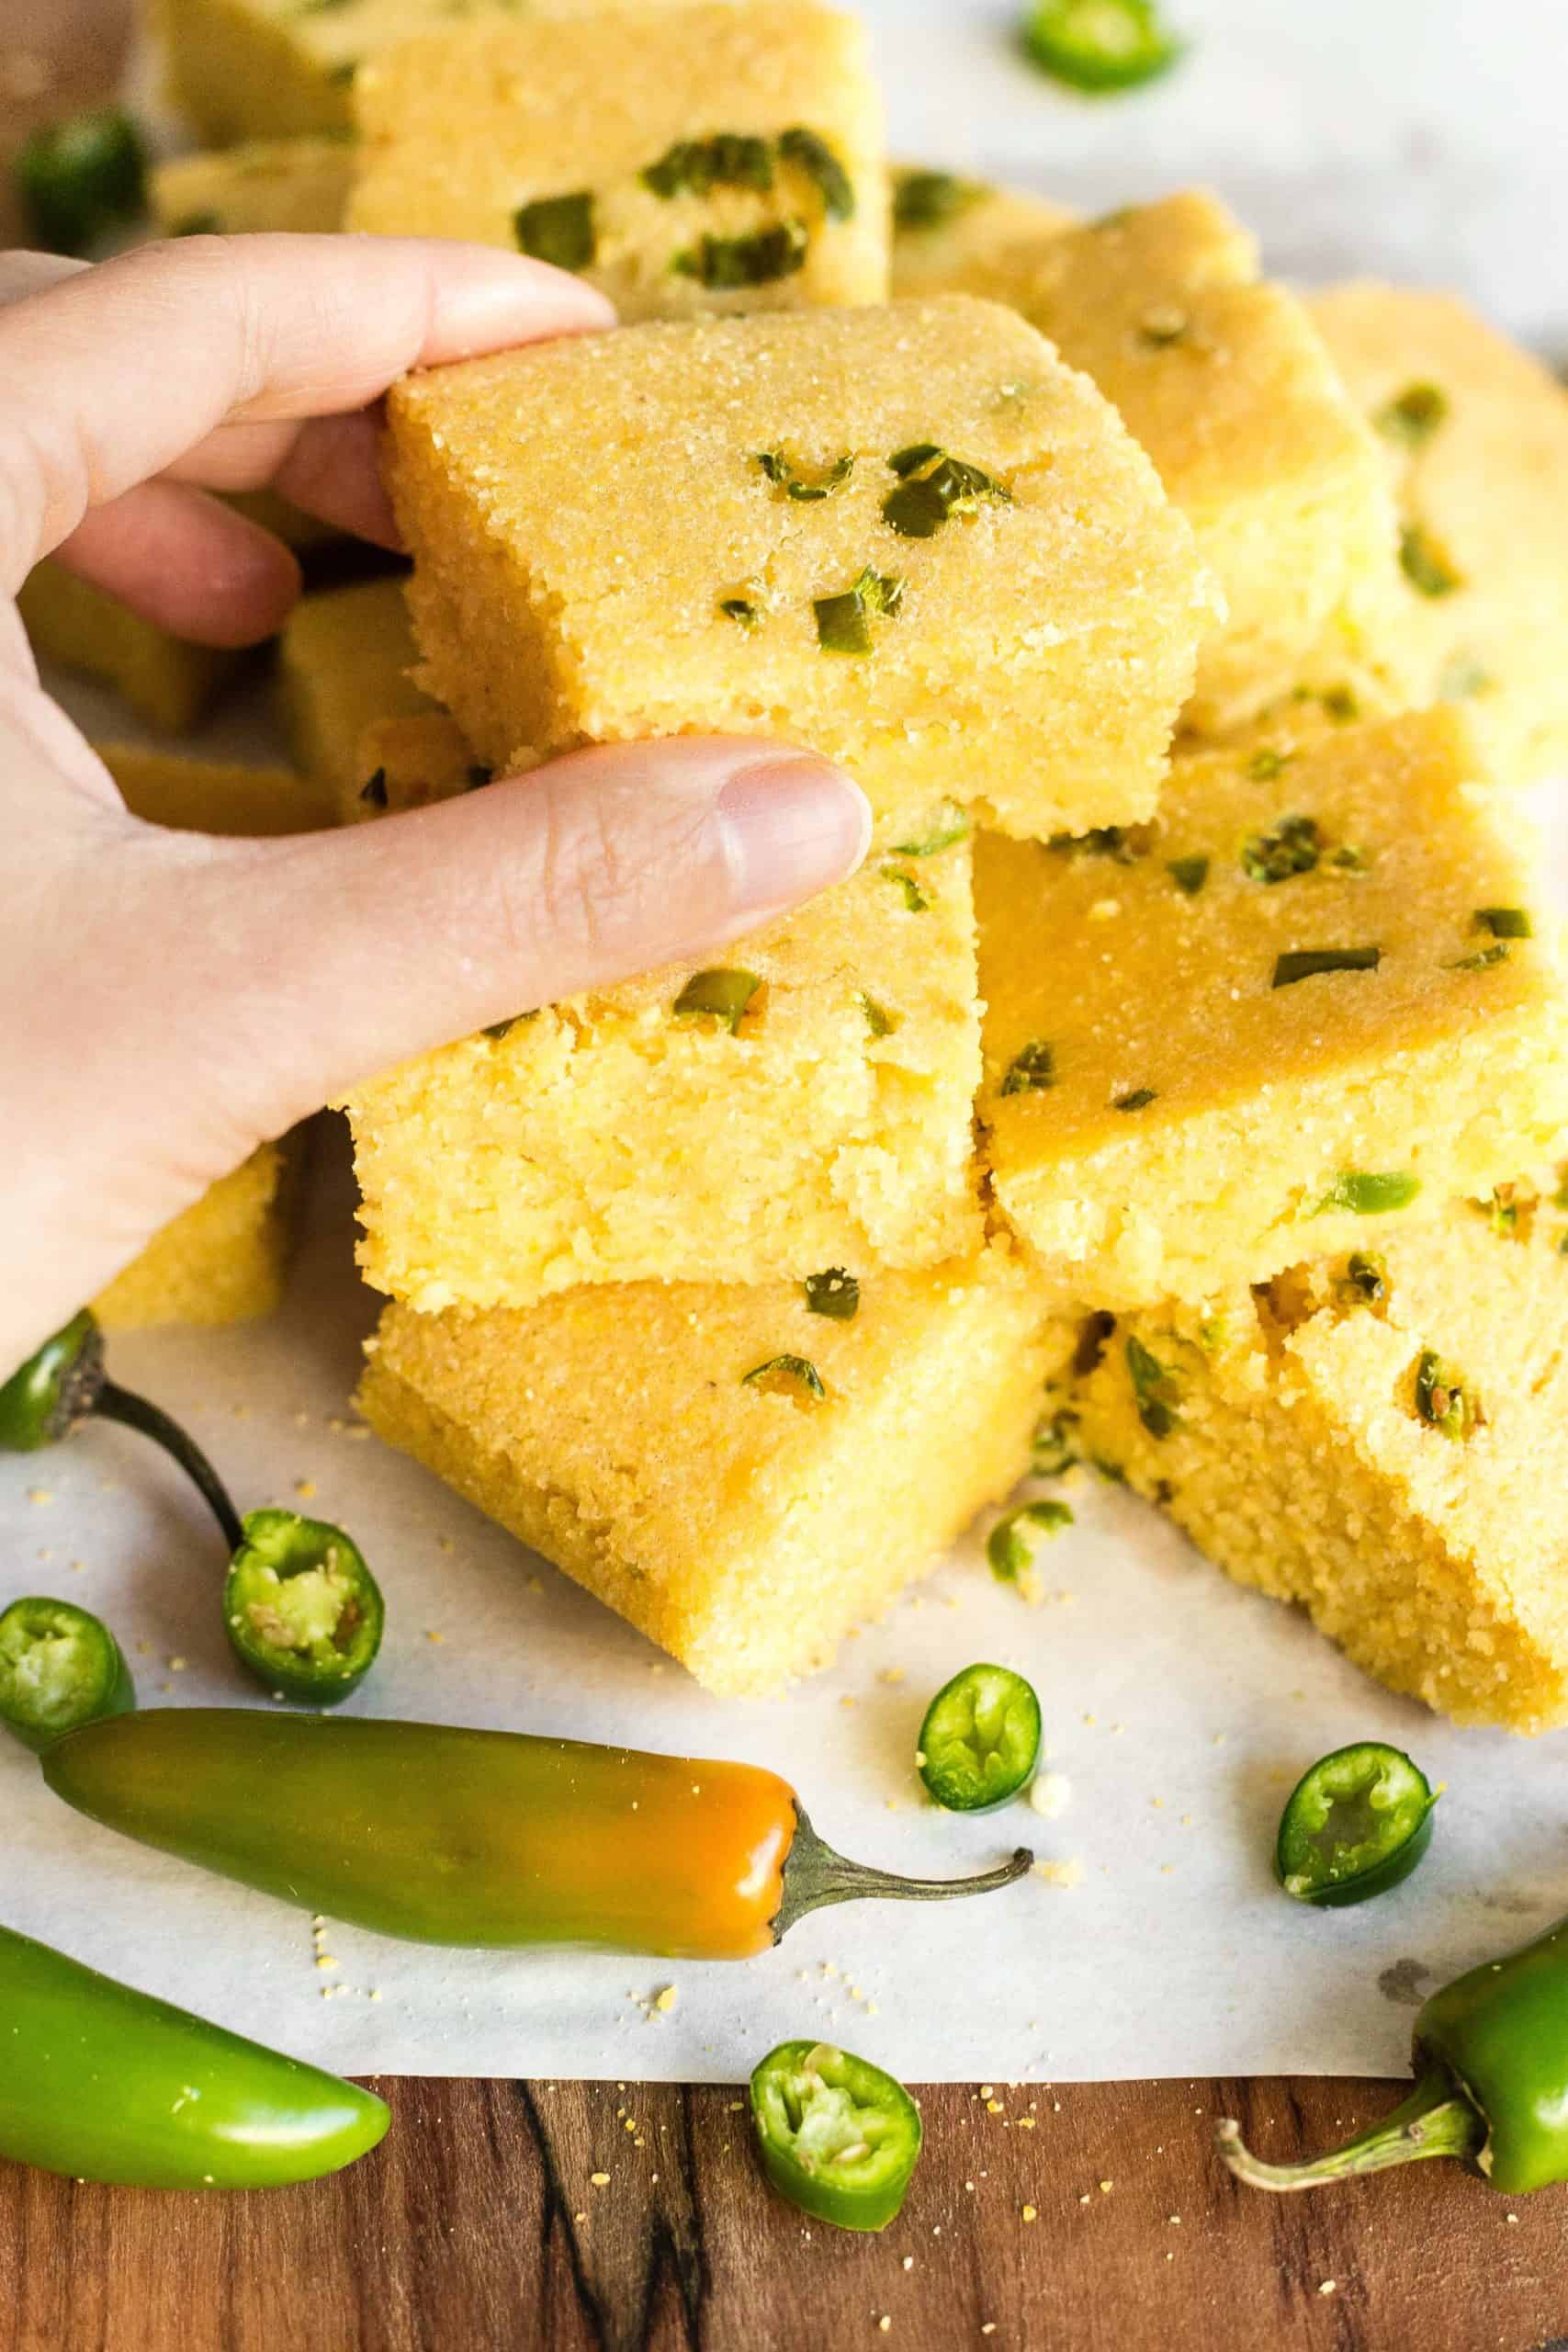 Hand reaching for a piece of jalapeño cornbread.